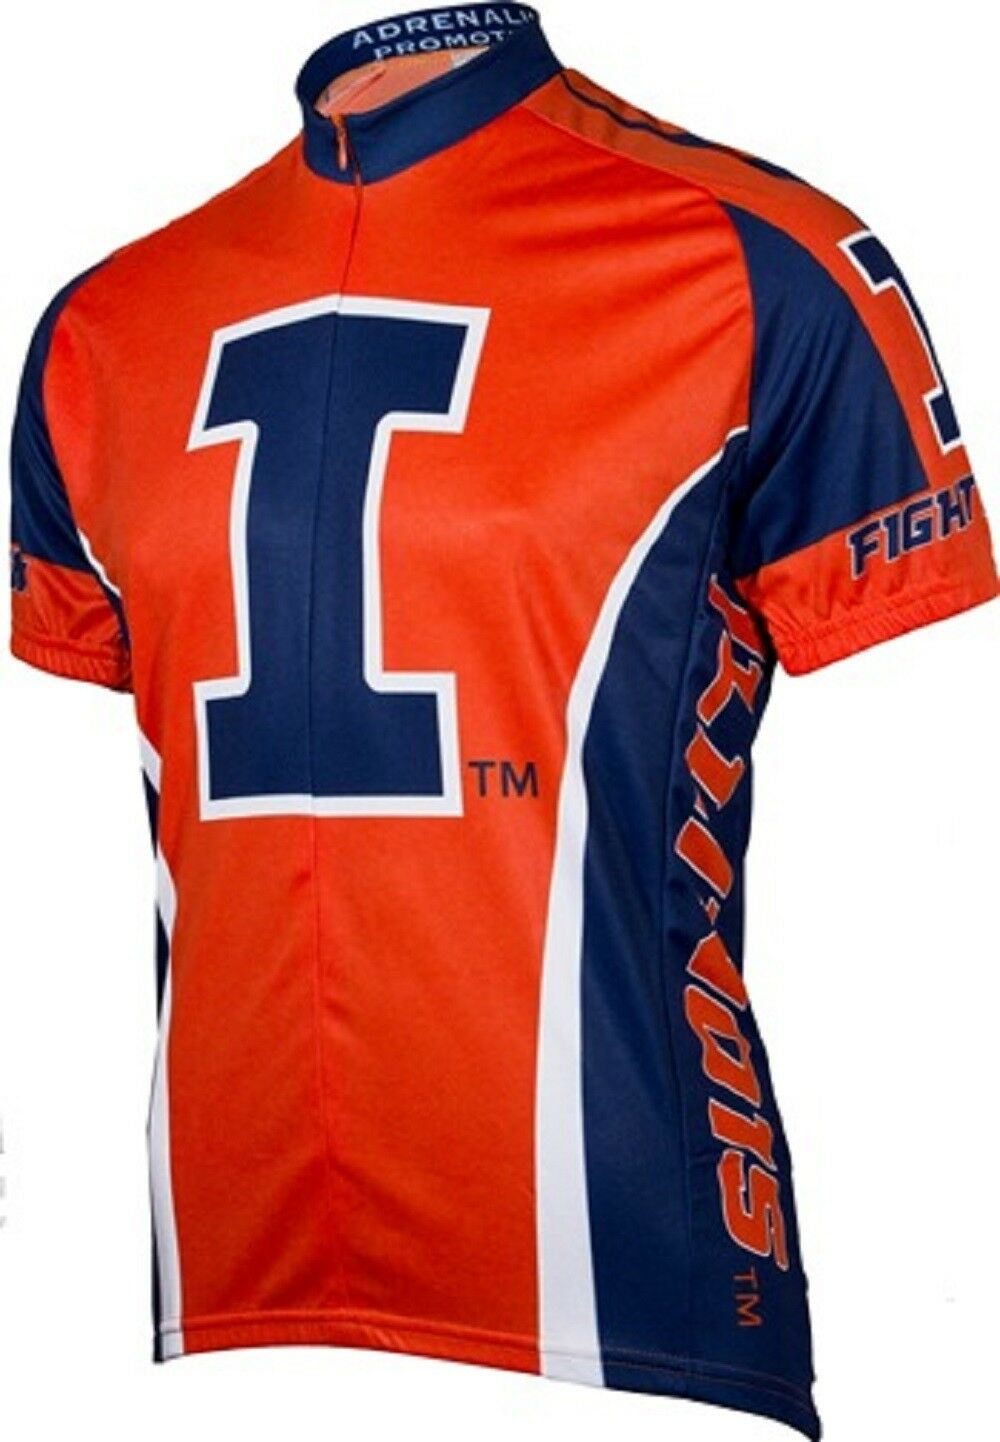 NCAA mannen's Adrenaline Promotions Illinois Vechtend Illini Road Cycling Jersey